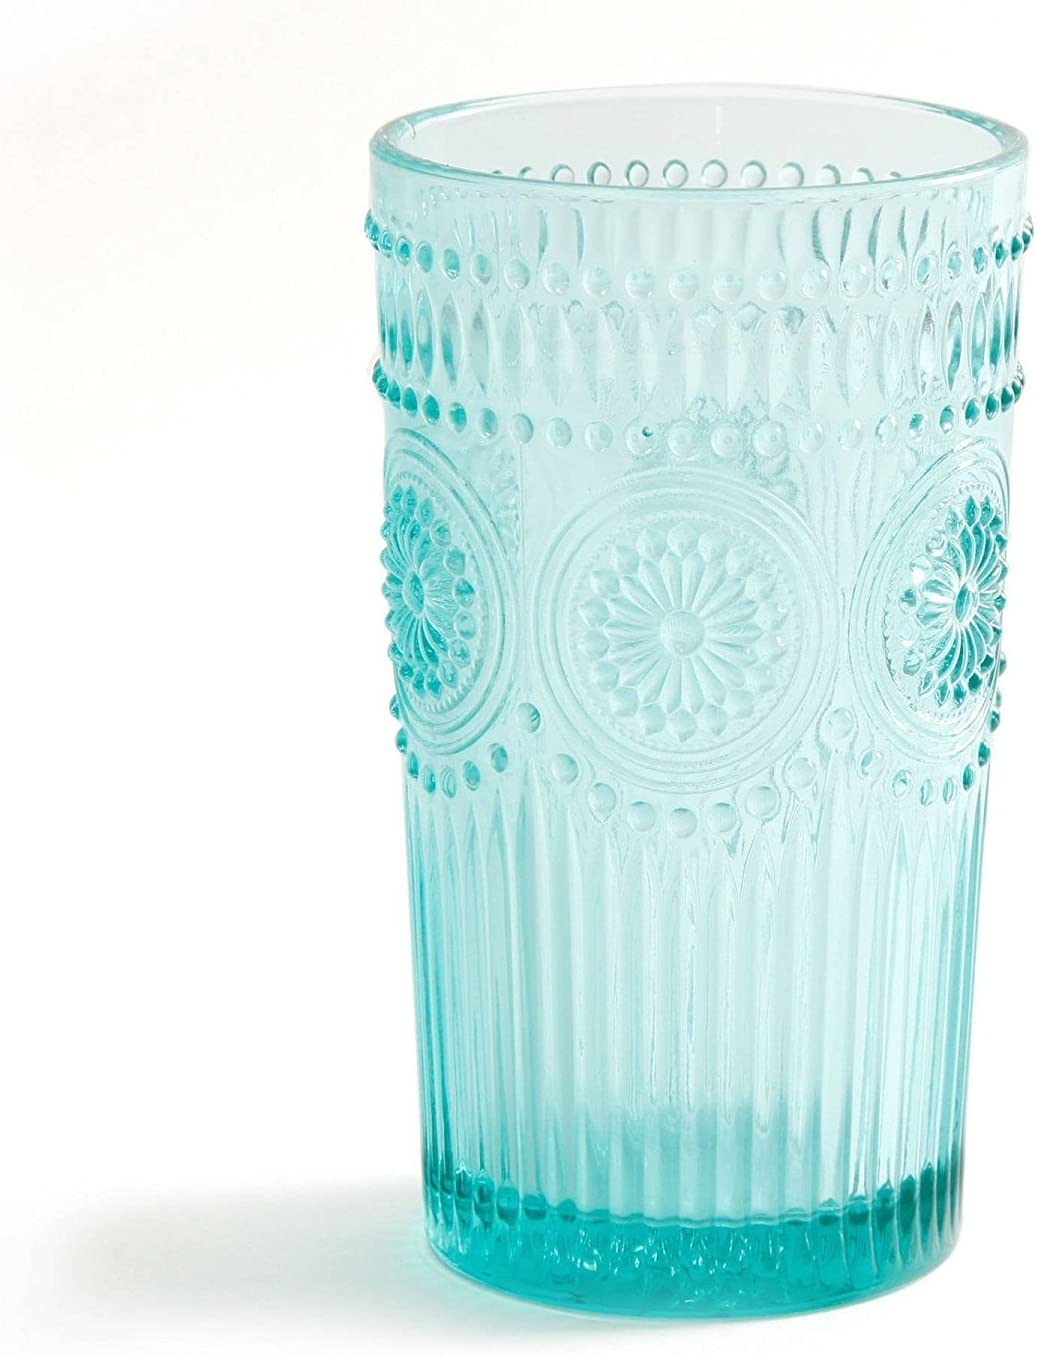 The Pioneer Woman Adeline 16-Ounce Emboss Glass Tumblers Clear Set of 4